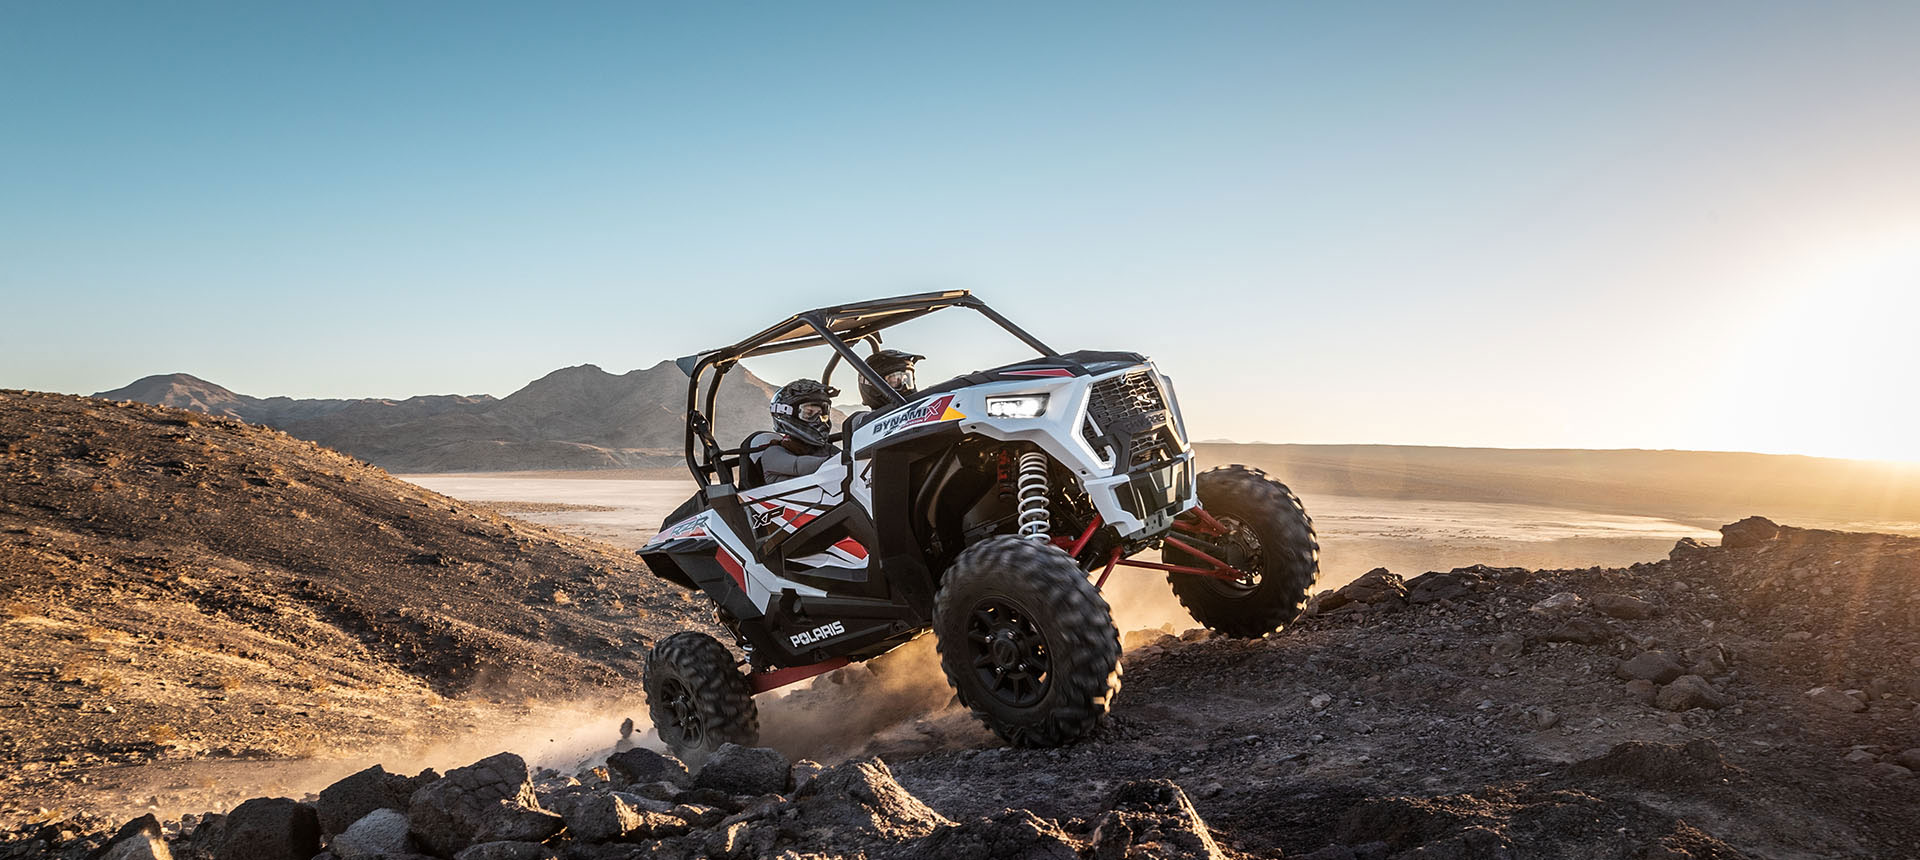 2019 Polaris RZR XP 1000 in Freeport, Florida - Photo 4